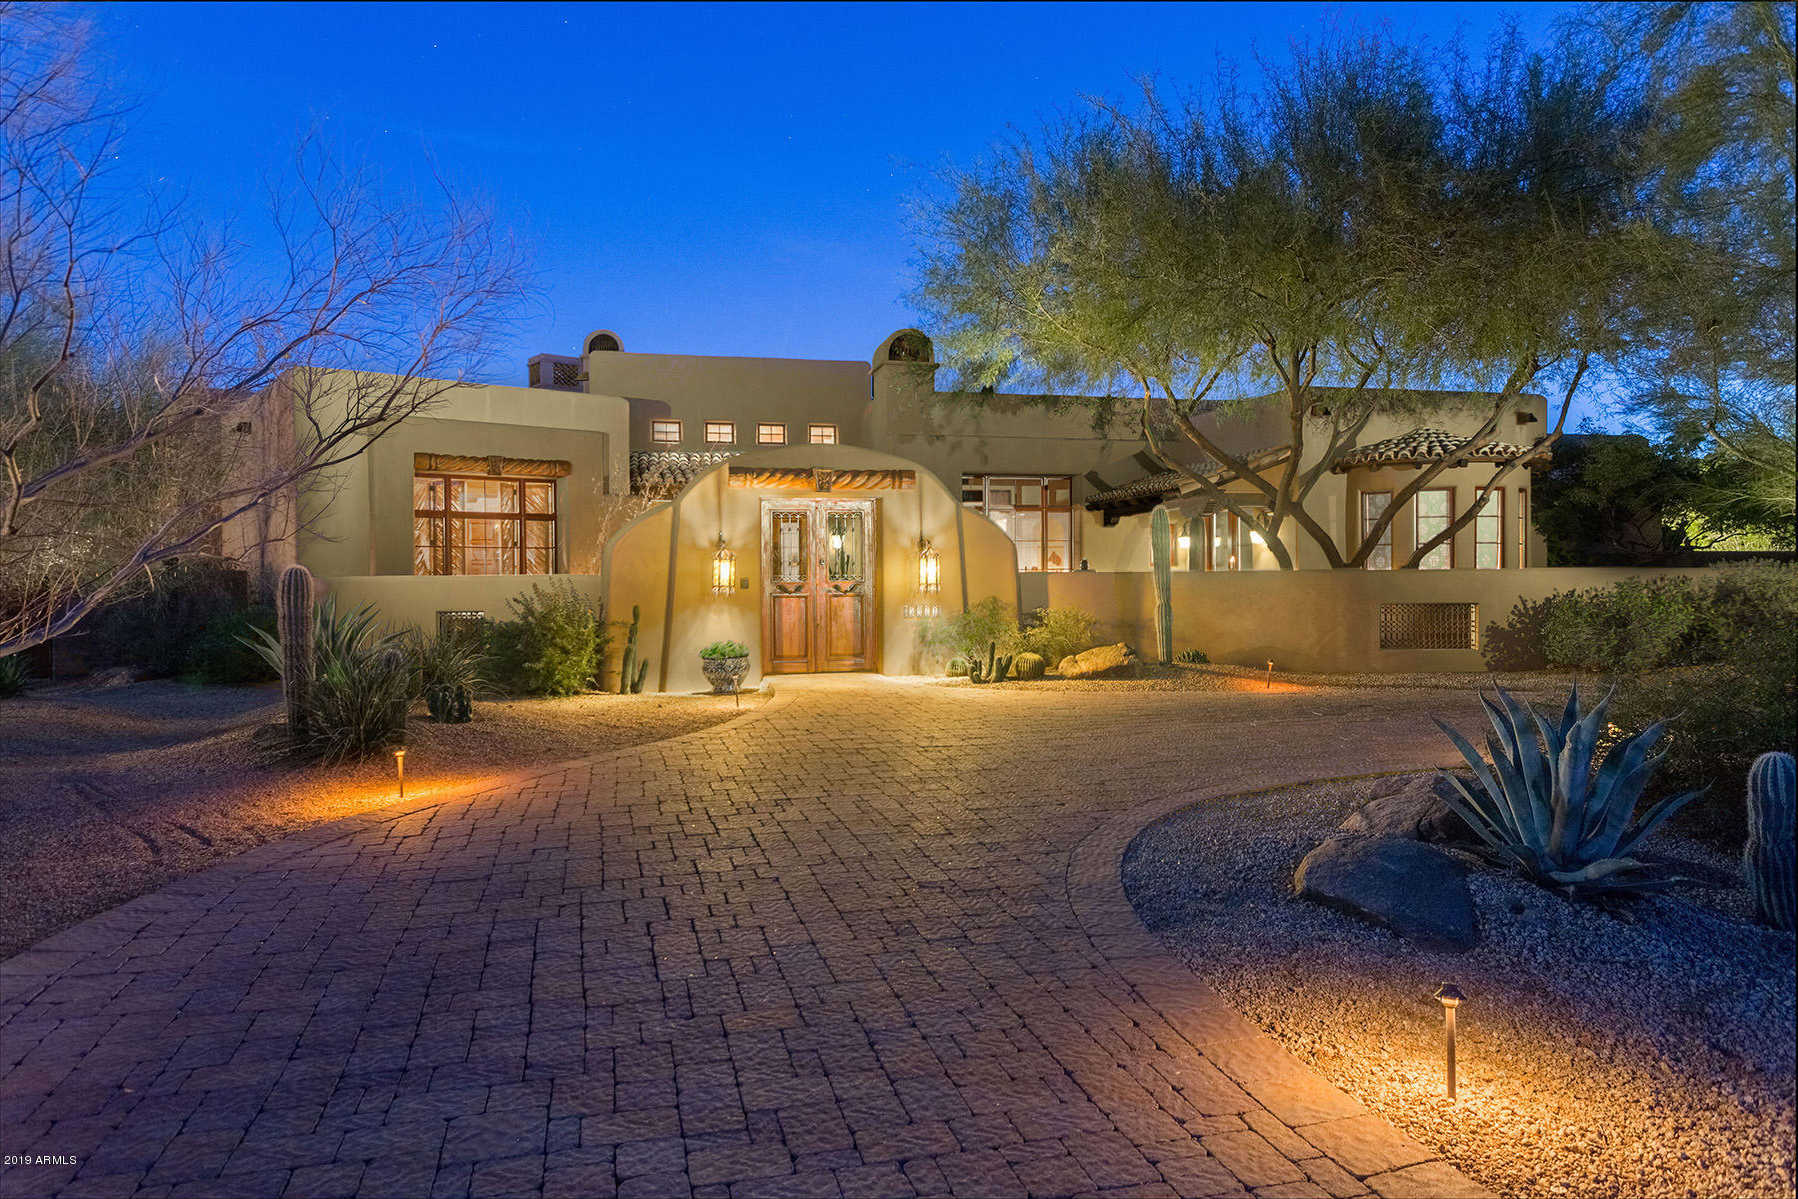 $2,500,000 - 4Br/5Ba - Home for Sale in Bradley Acres, Paradise Valley